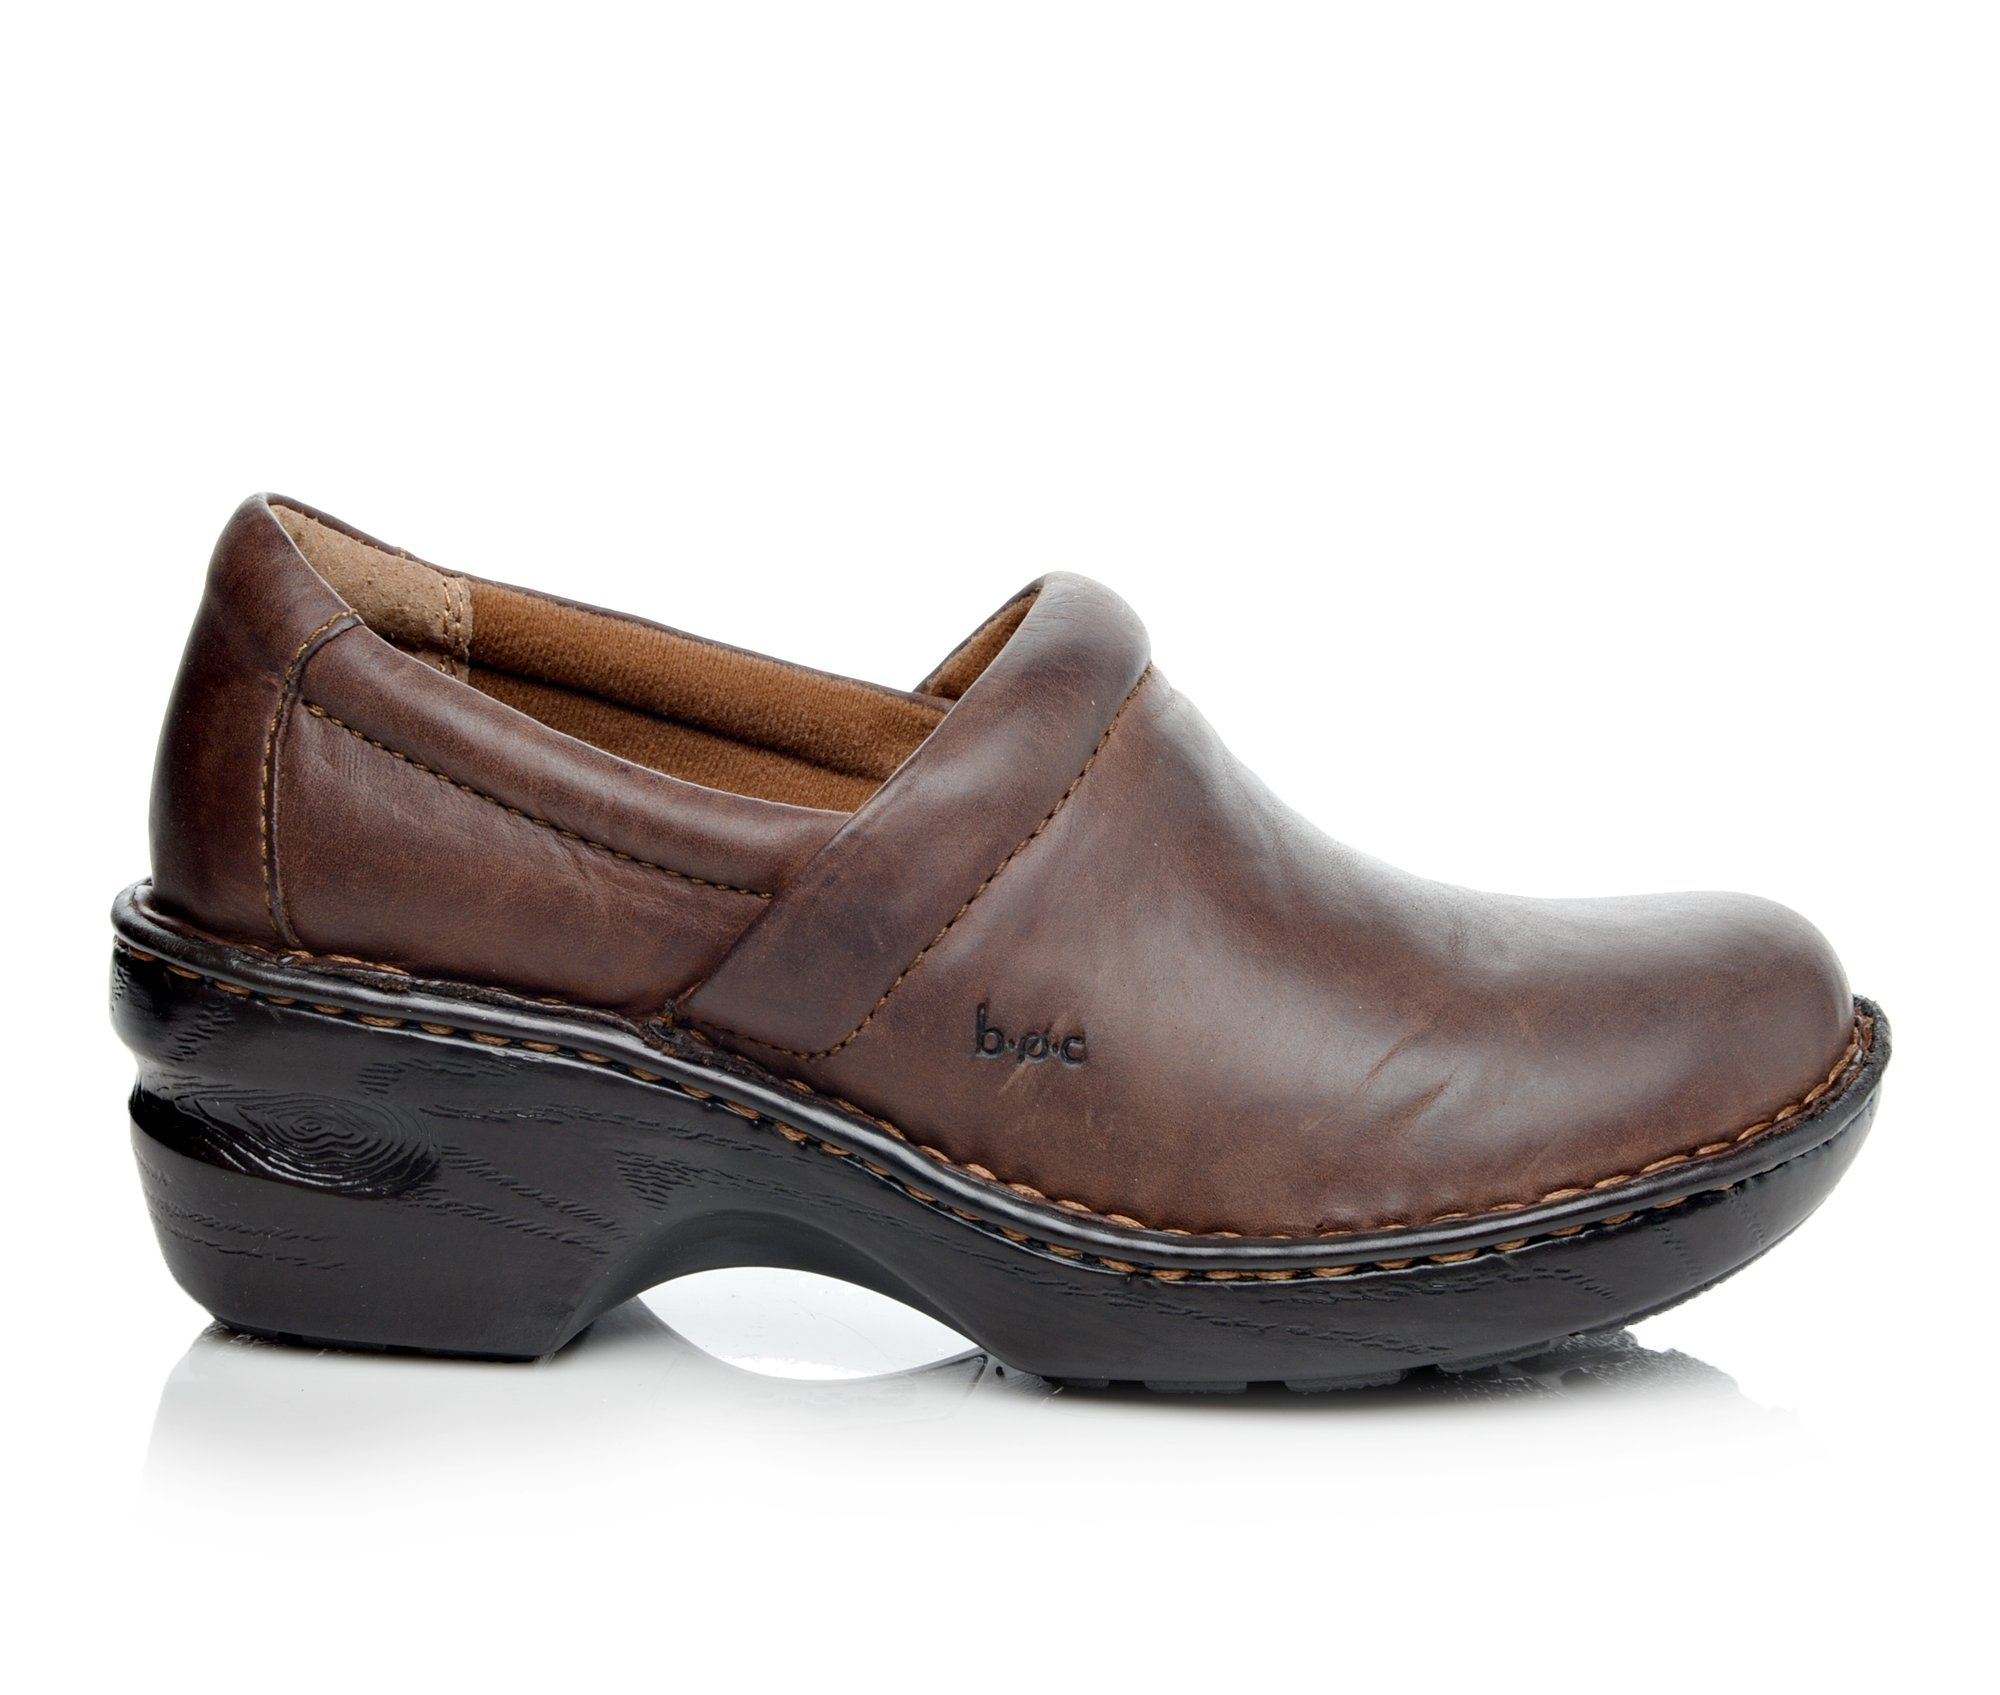 B.O.C. Peggy Women's Shoe (Brown Leather)